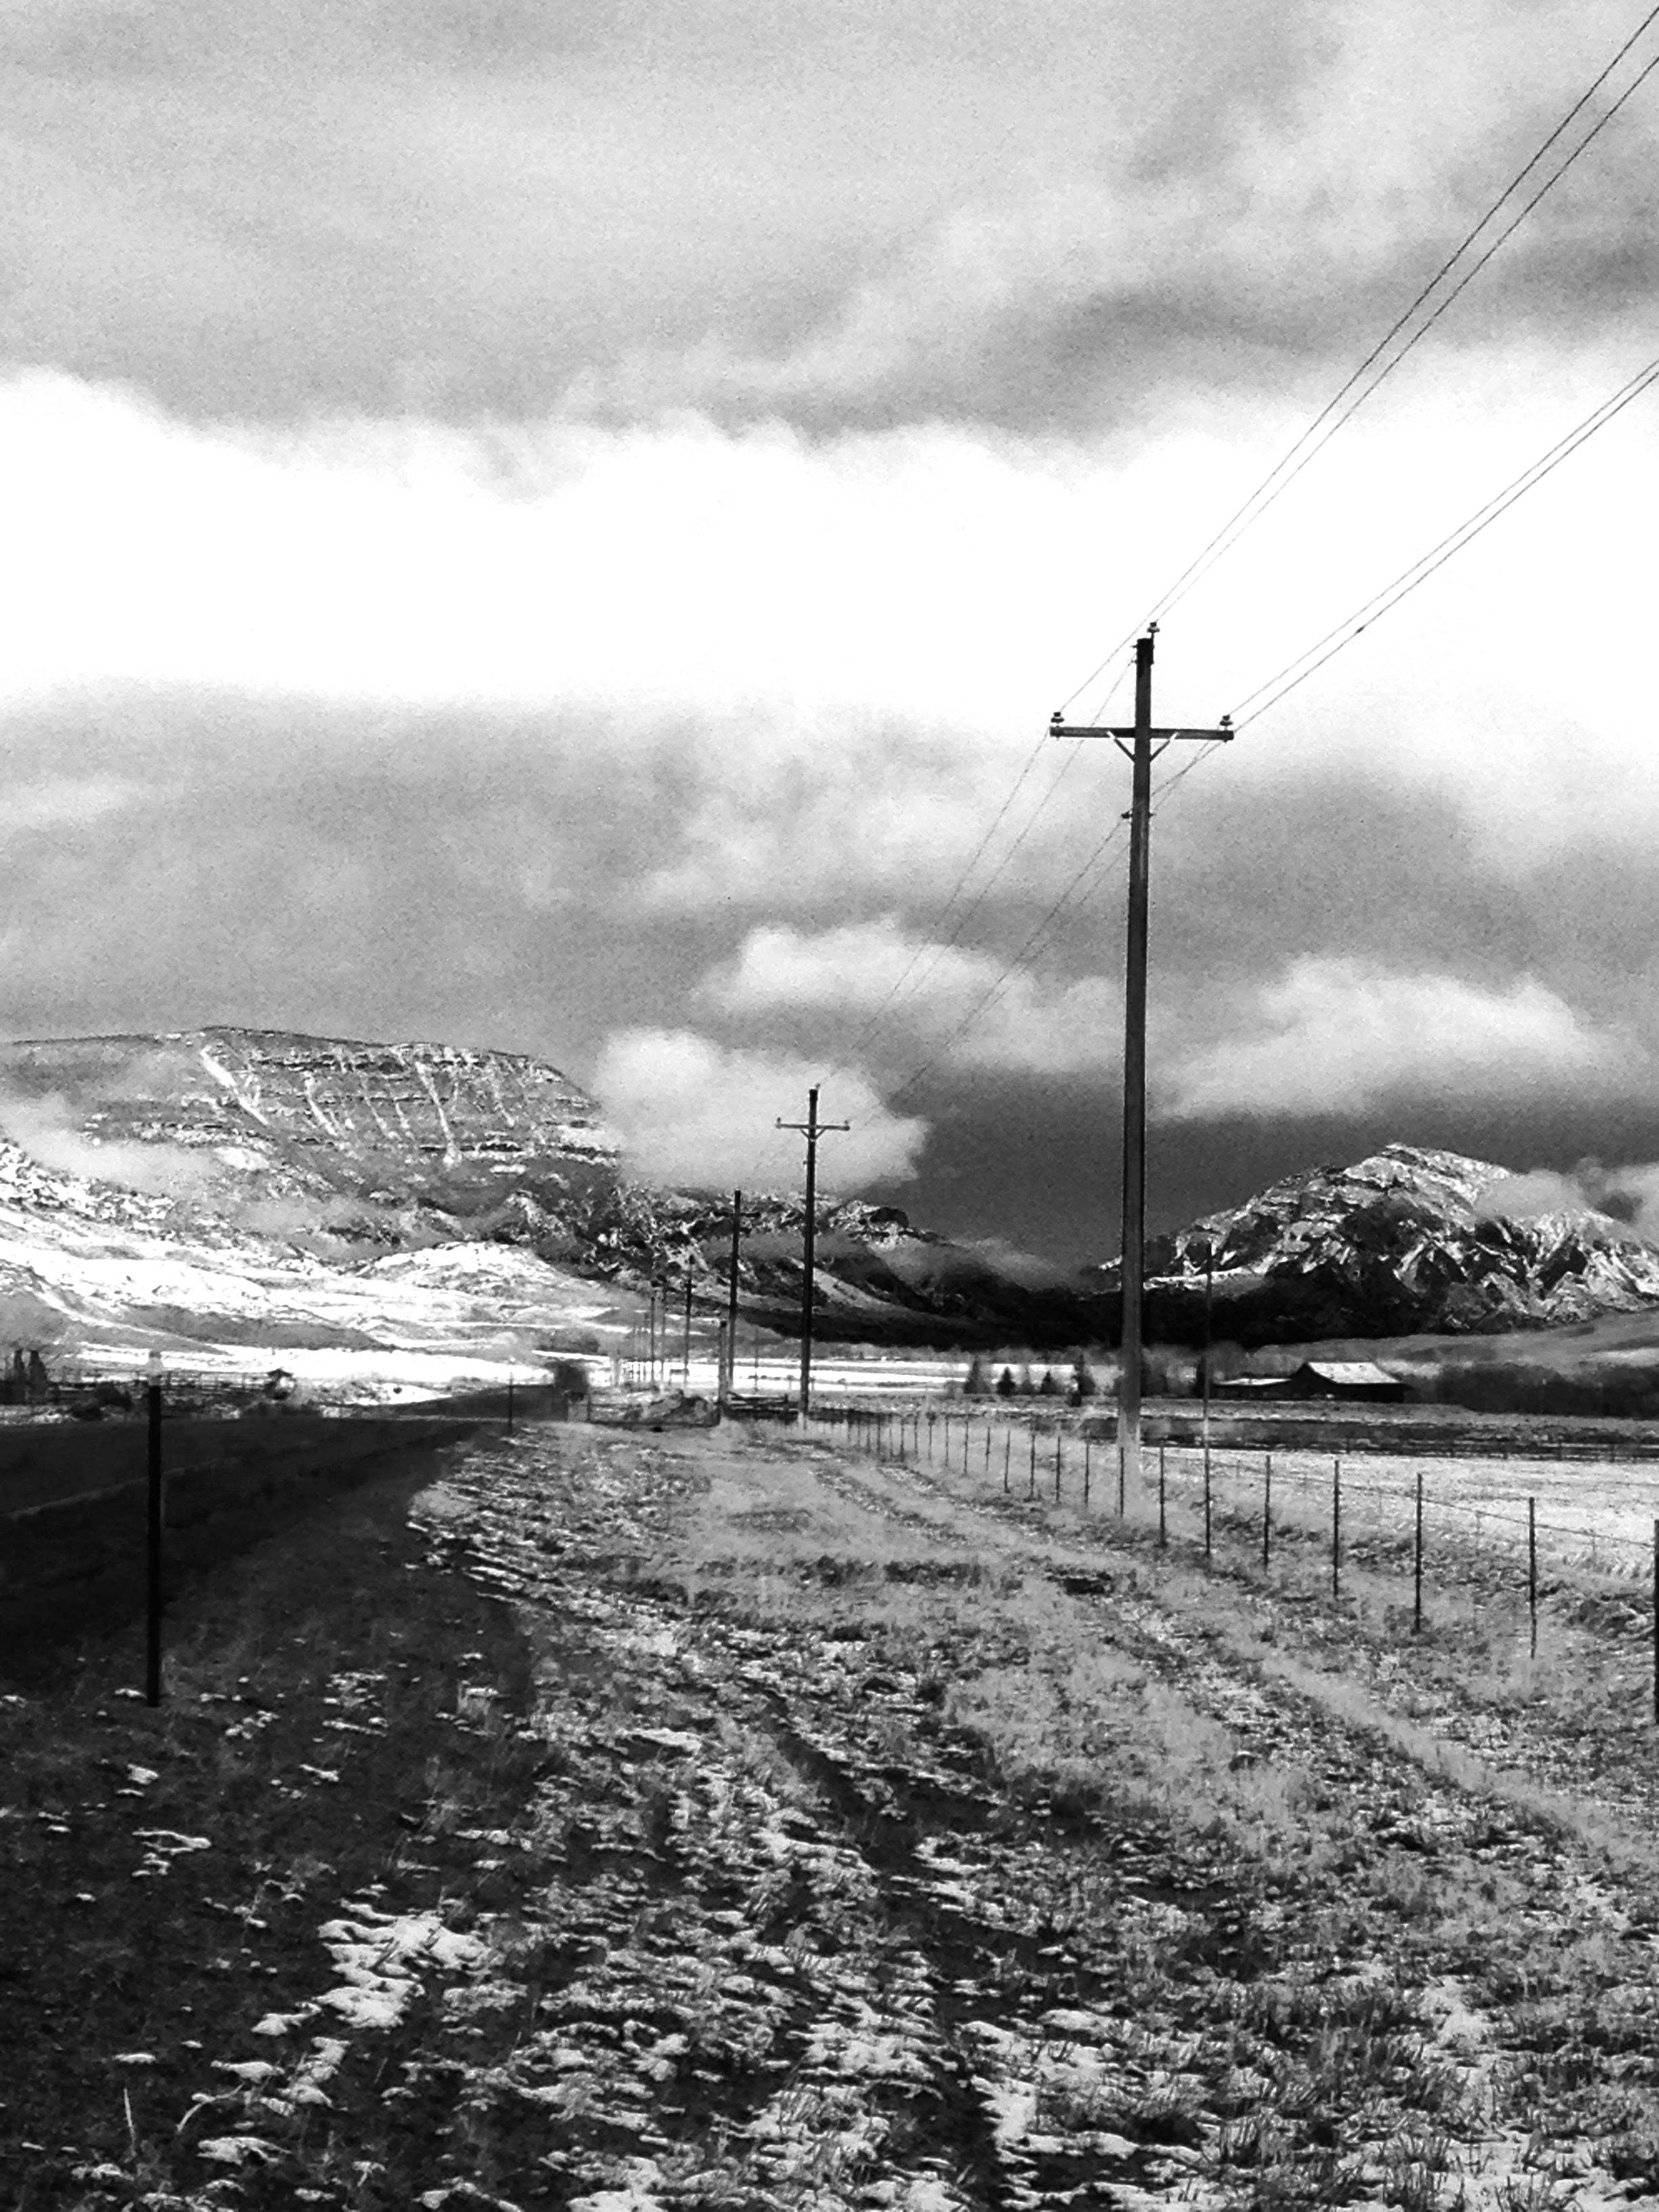 Trial run for nuclear winter, Hwy. 14, between Cody and Wapiti, Wyoming, 20 miles from the East Gate of Yellowstone National Park, April 1, 2017.